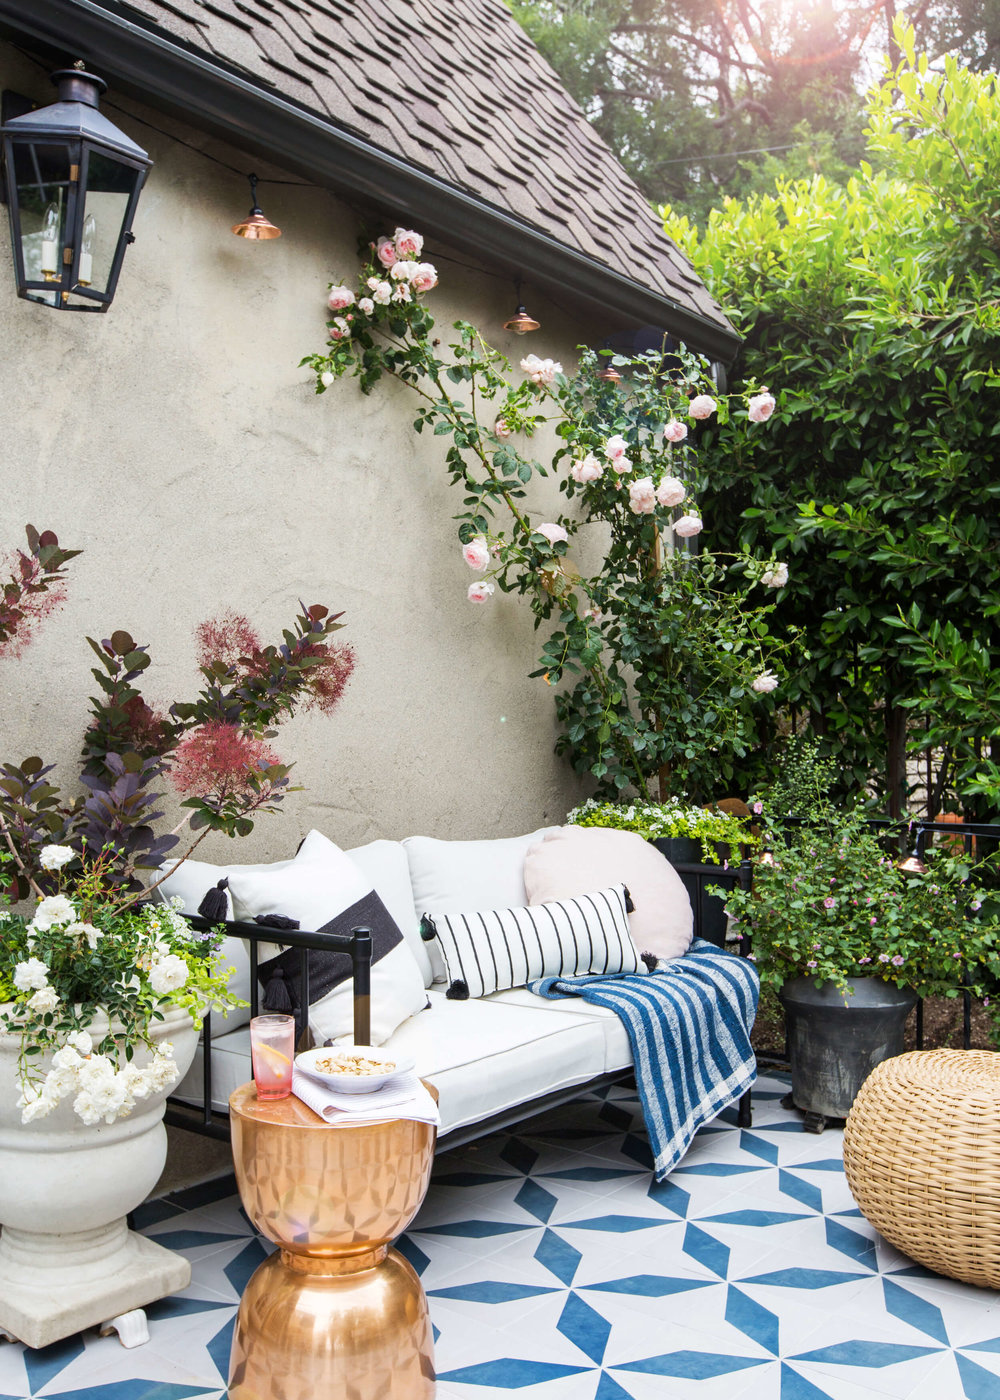 5 Inspiring outdoor spaces